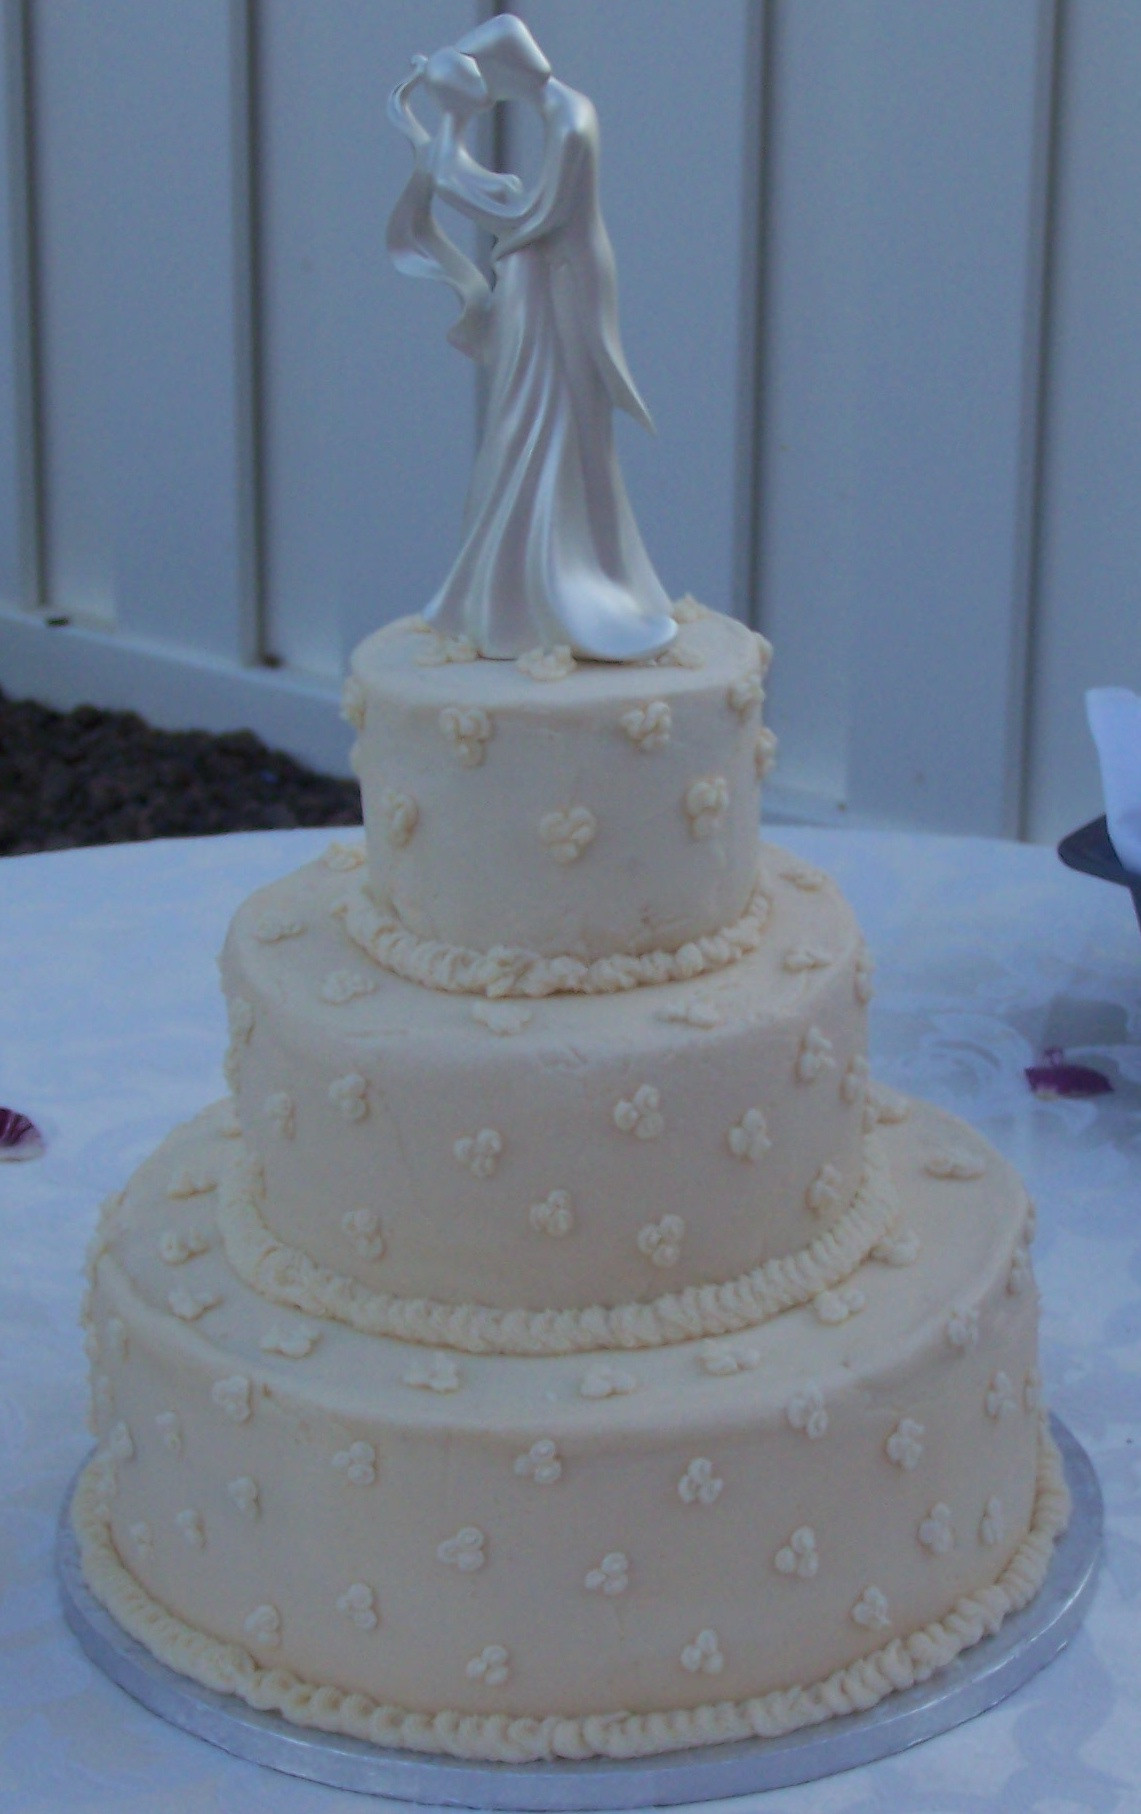 Wedding Cakes Scottsdale  Specialty Wedding Cake Gallery 2 AZCAKEDIVA Custom e